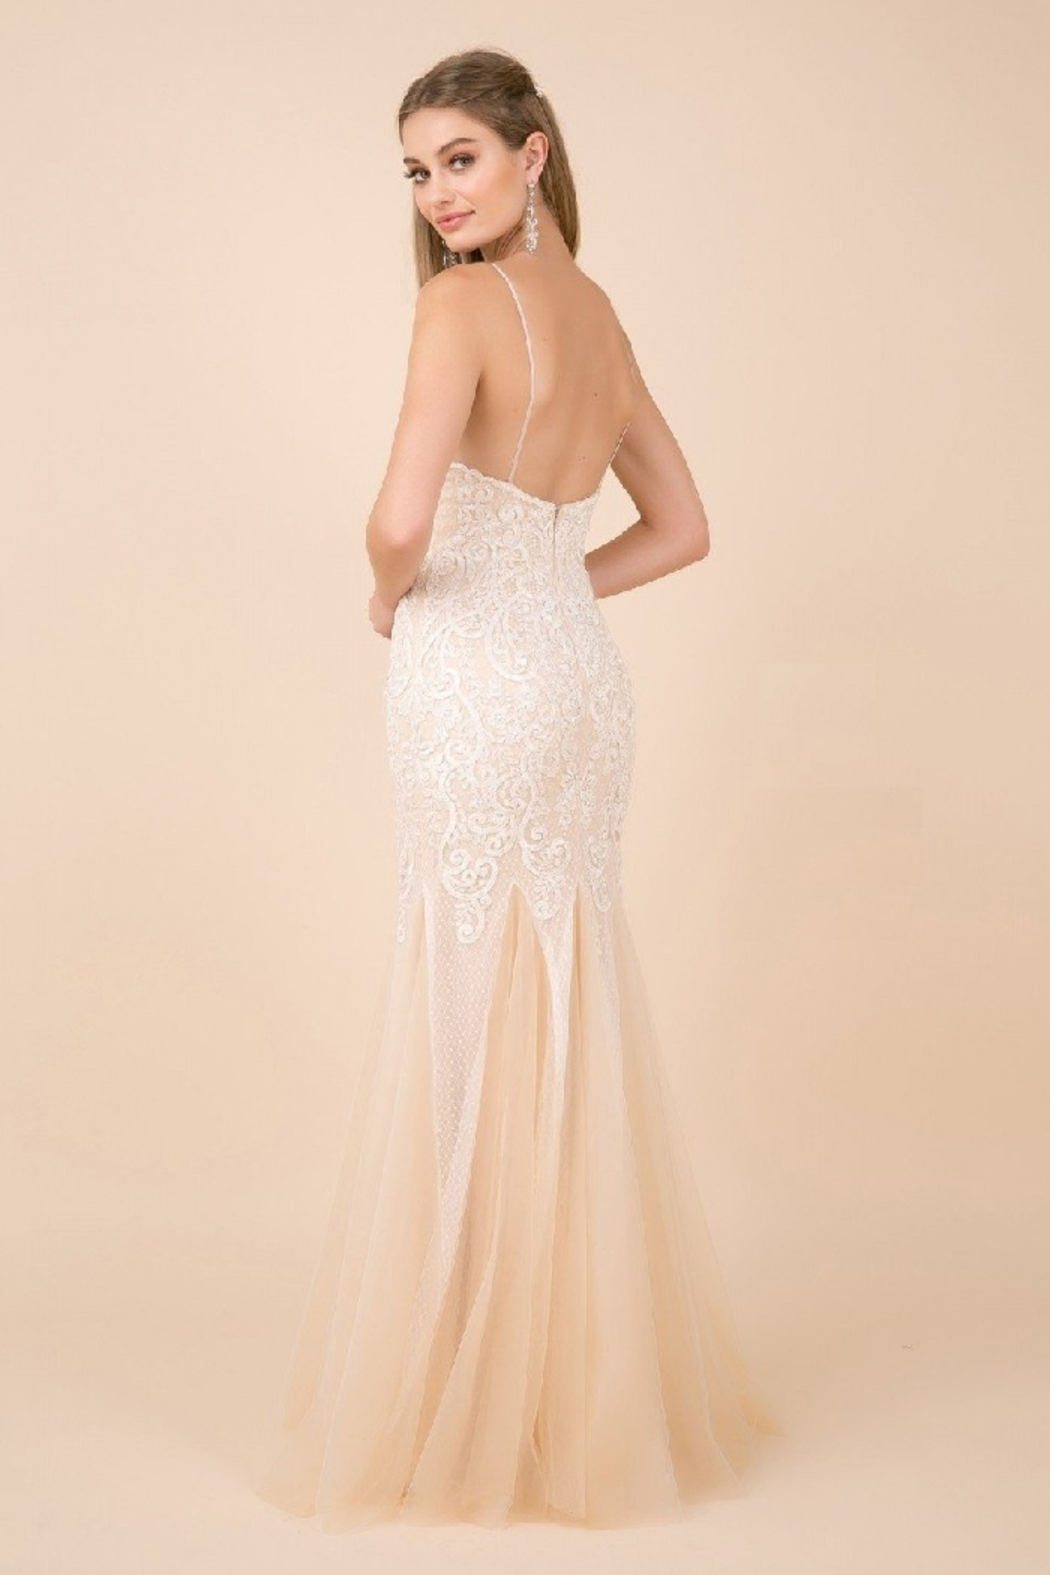 NOX A N A B E L White & Nude Lace Mermaid Bridal Gown - Side Cropped Image